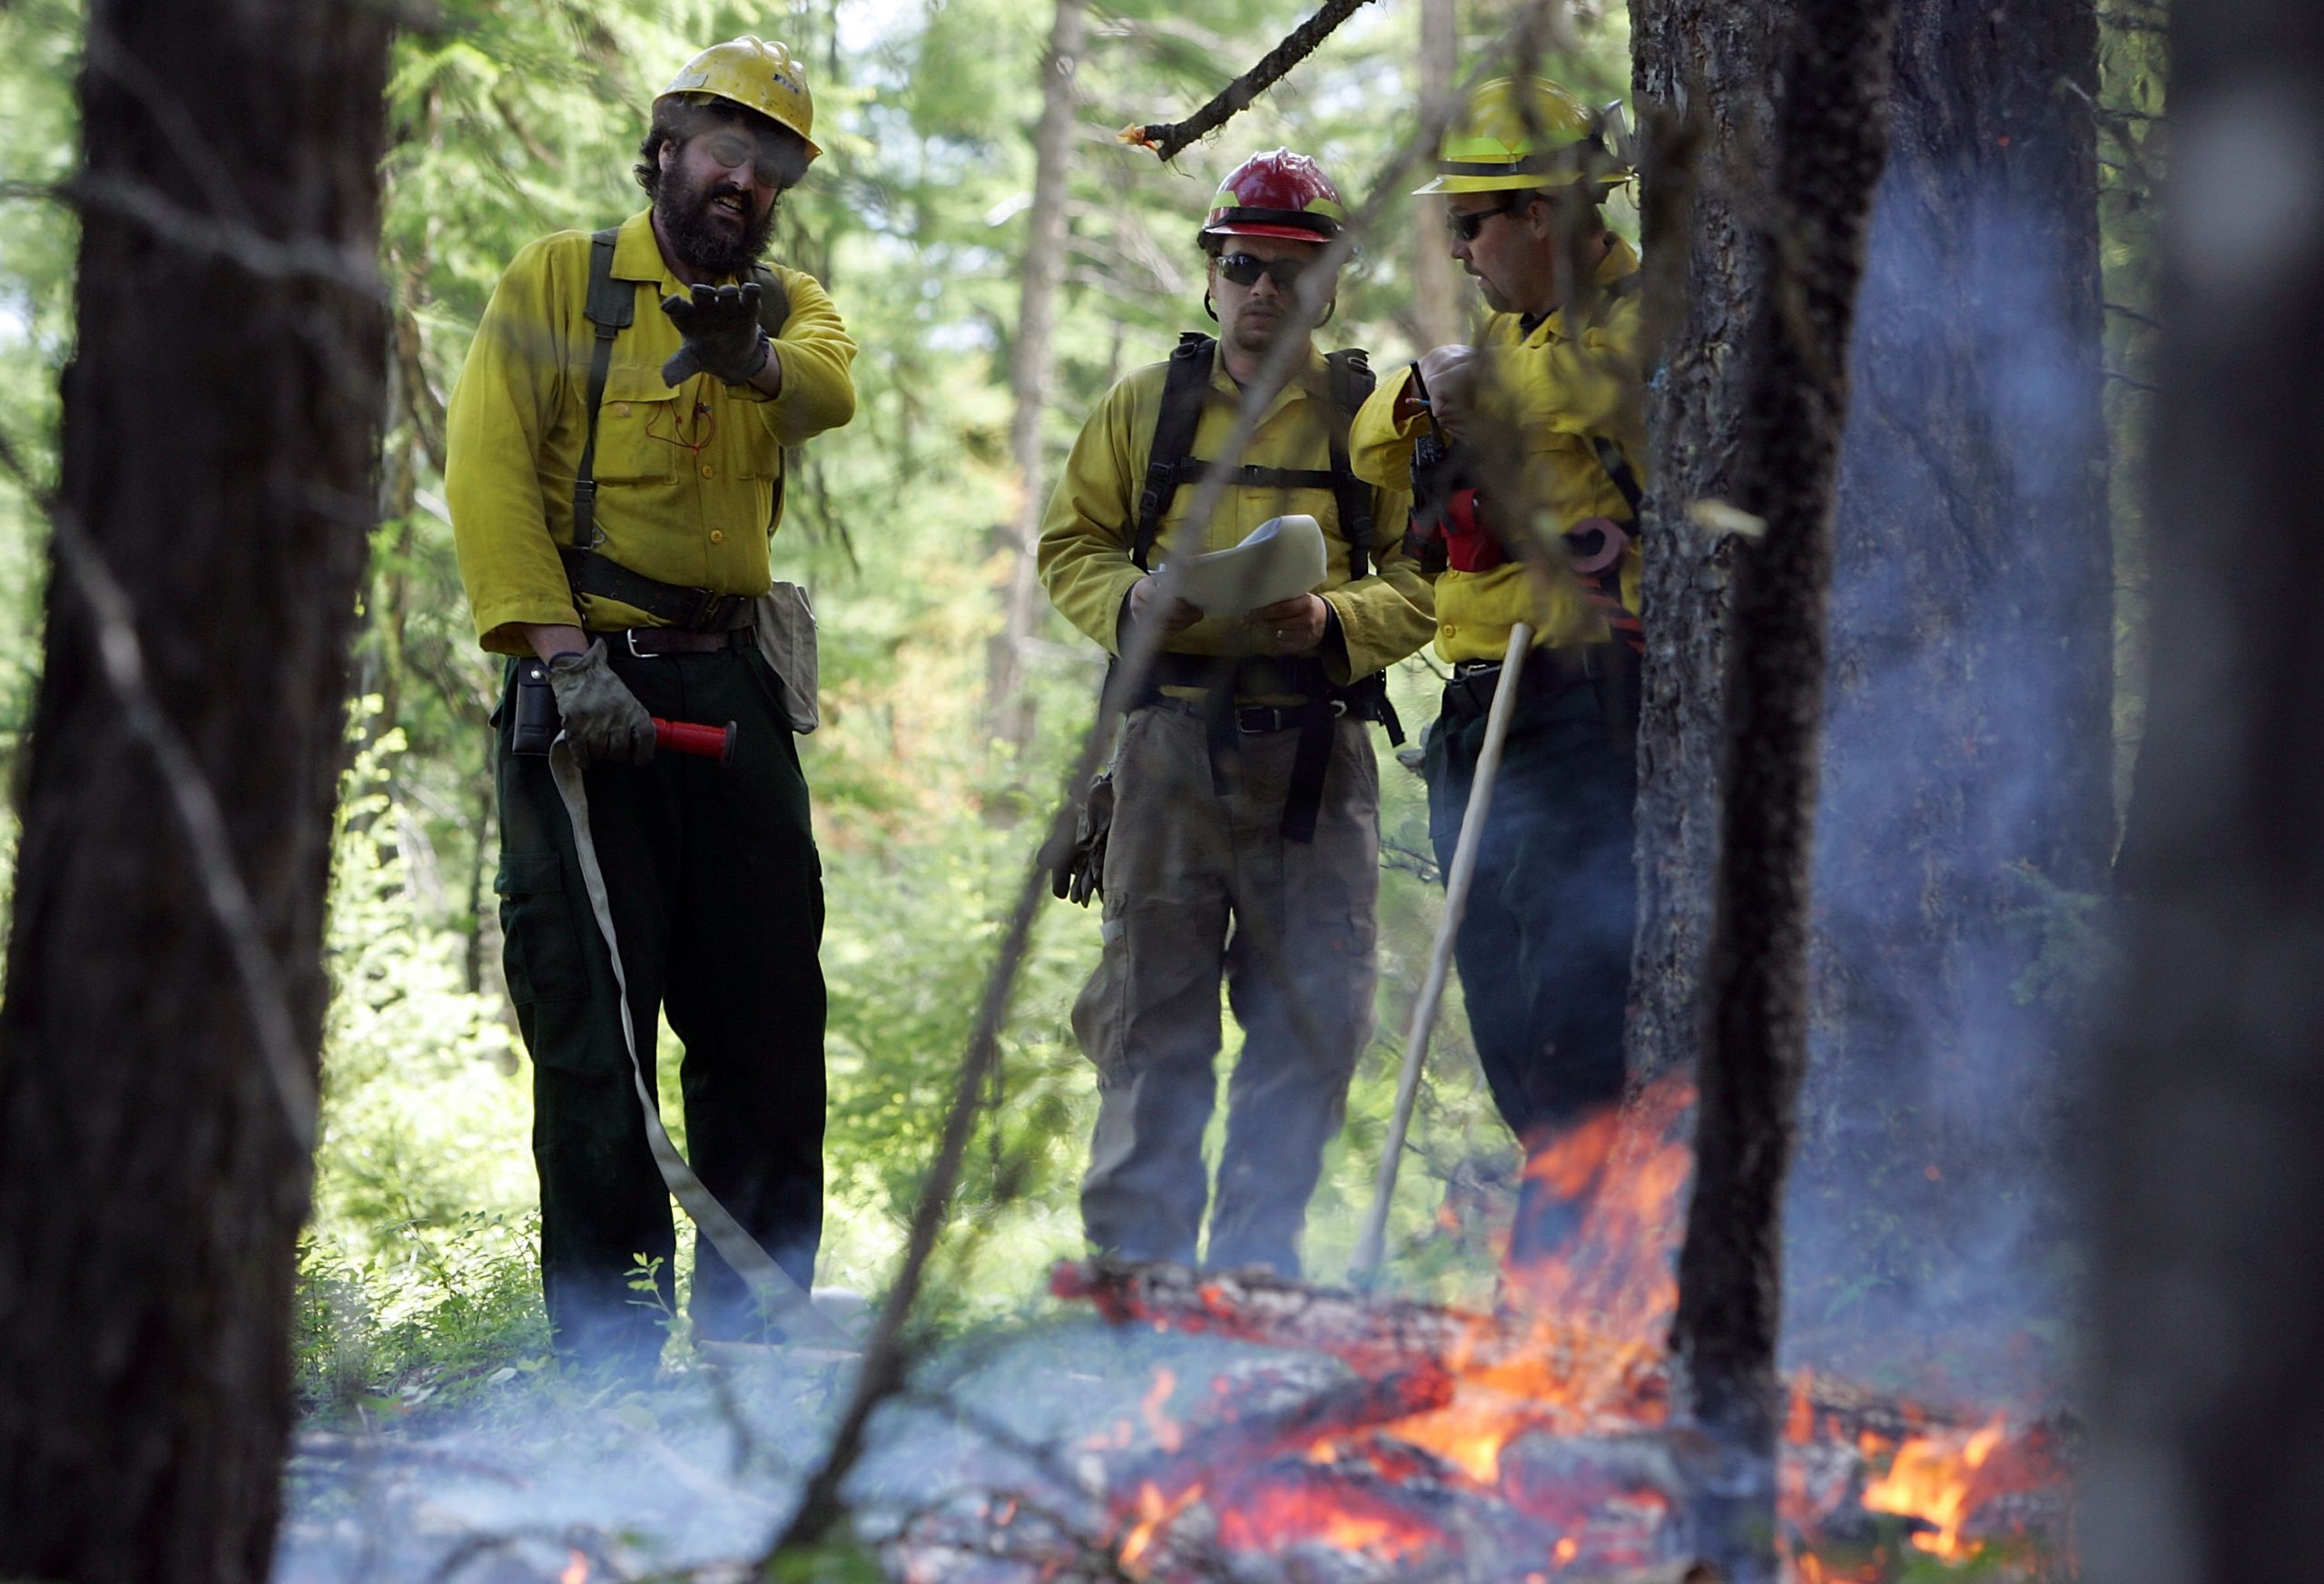 Official: Fire season stretching resources thin